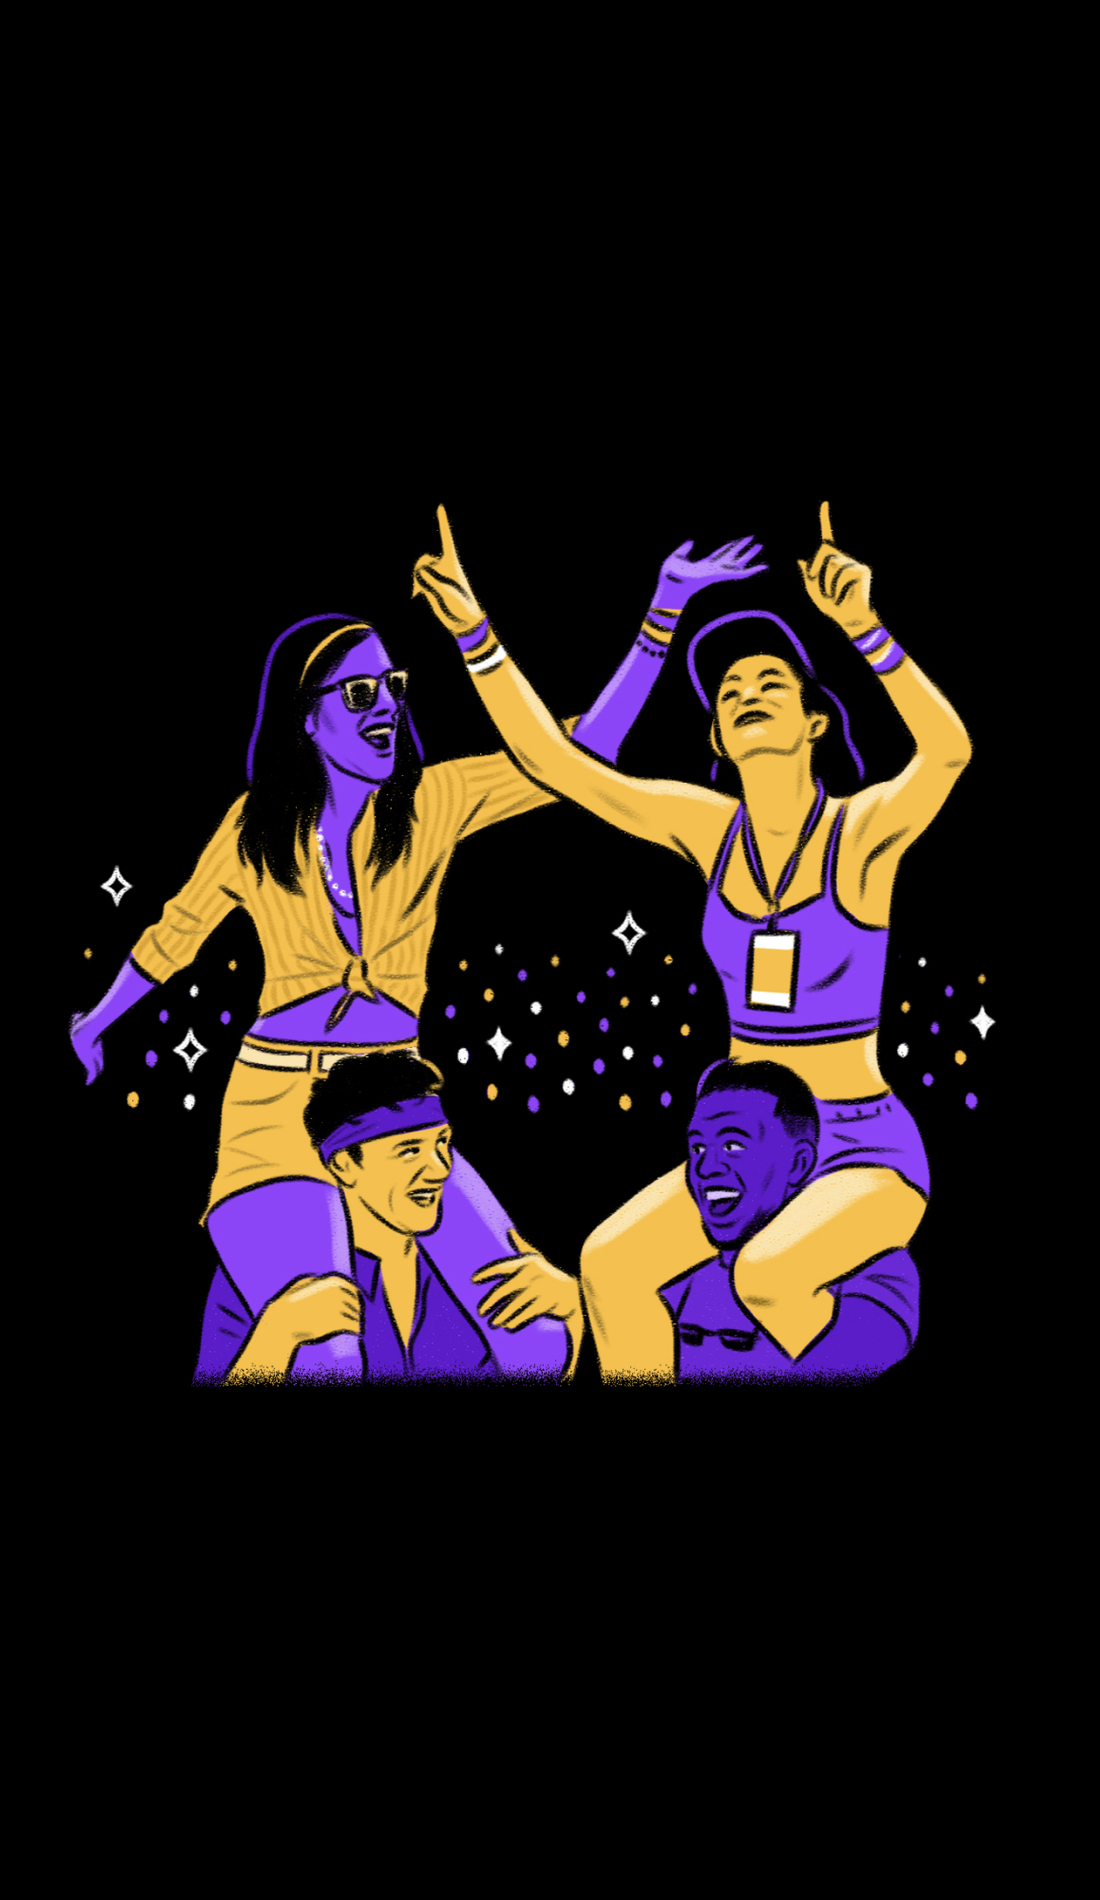 A Faster Horses Festival live event